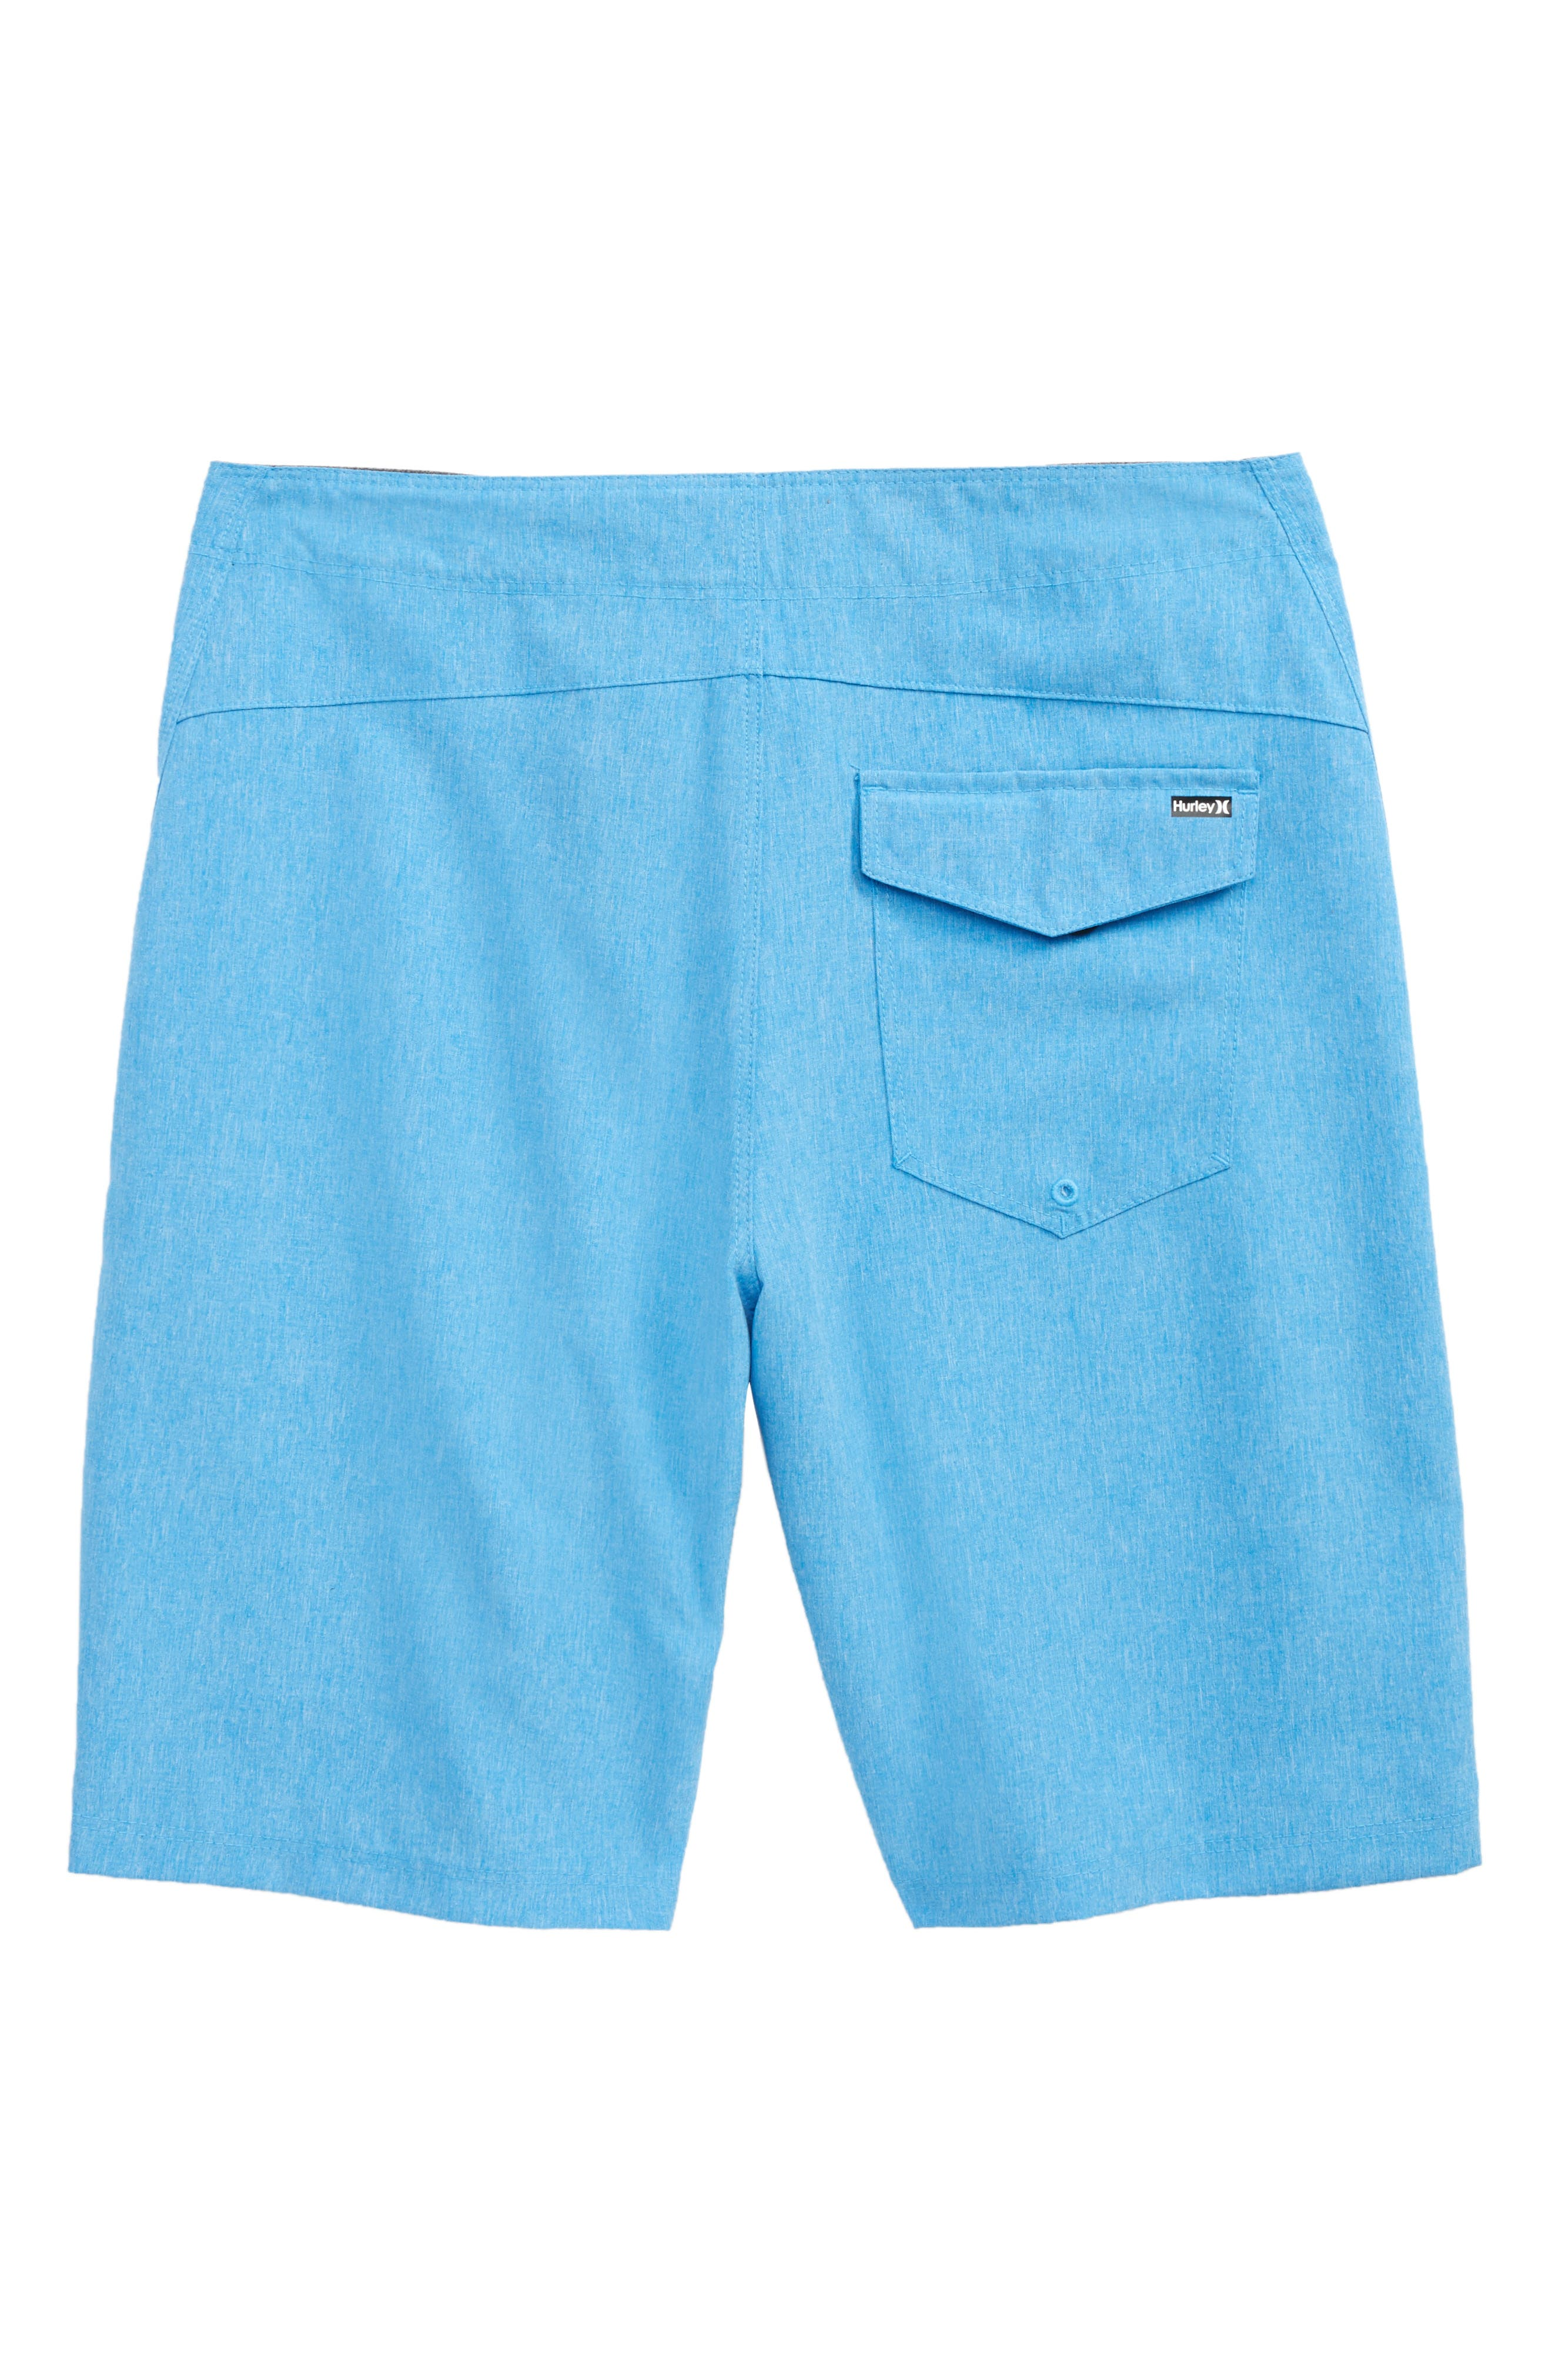 Alternate Image 2  - Hurley One and Only Dri-FIT Board Shorts (Big Boys)